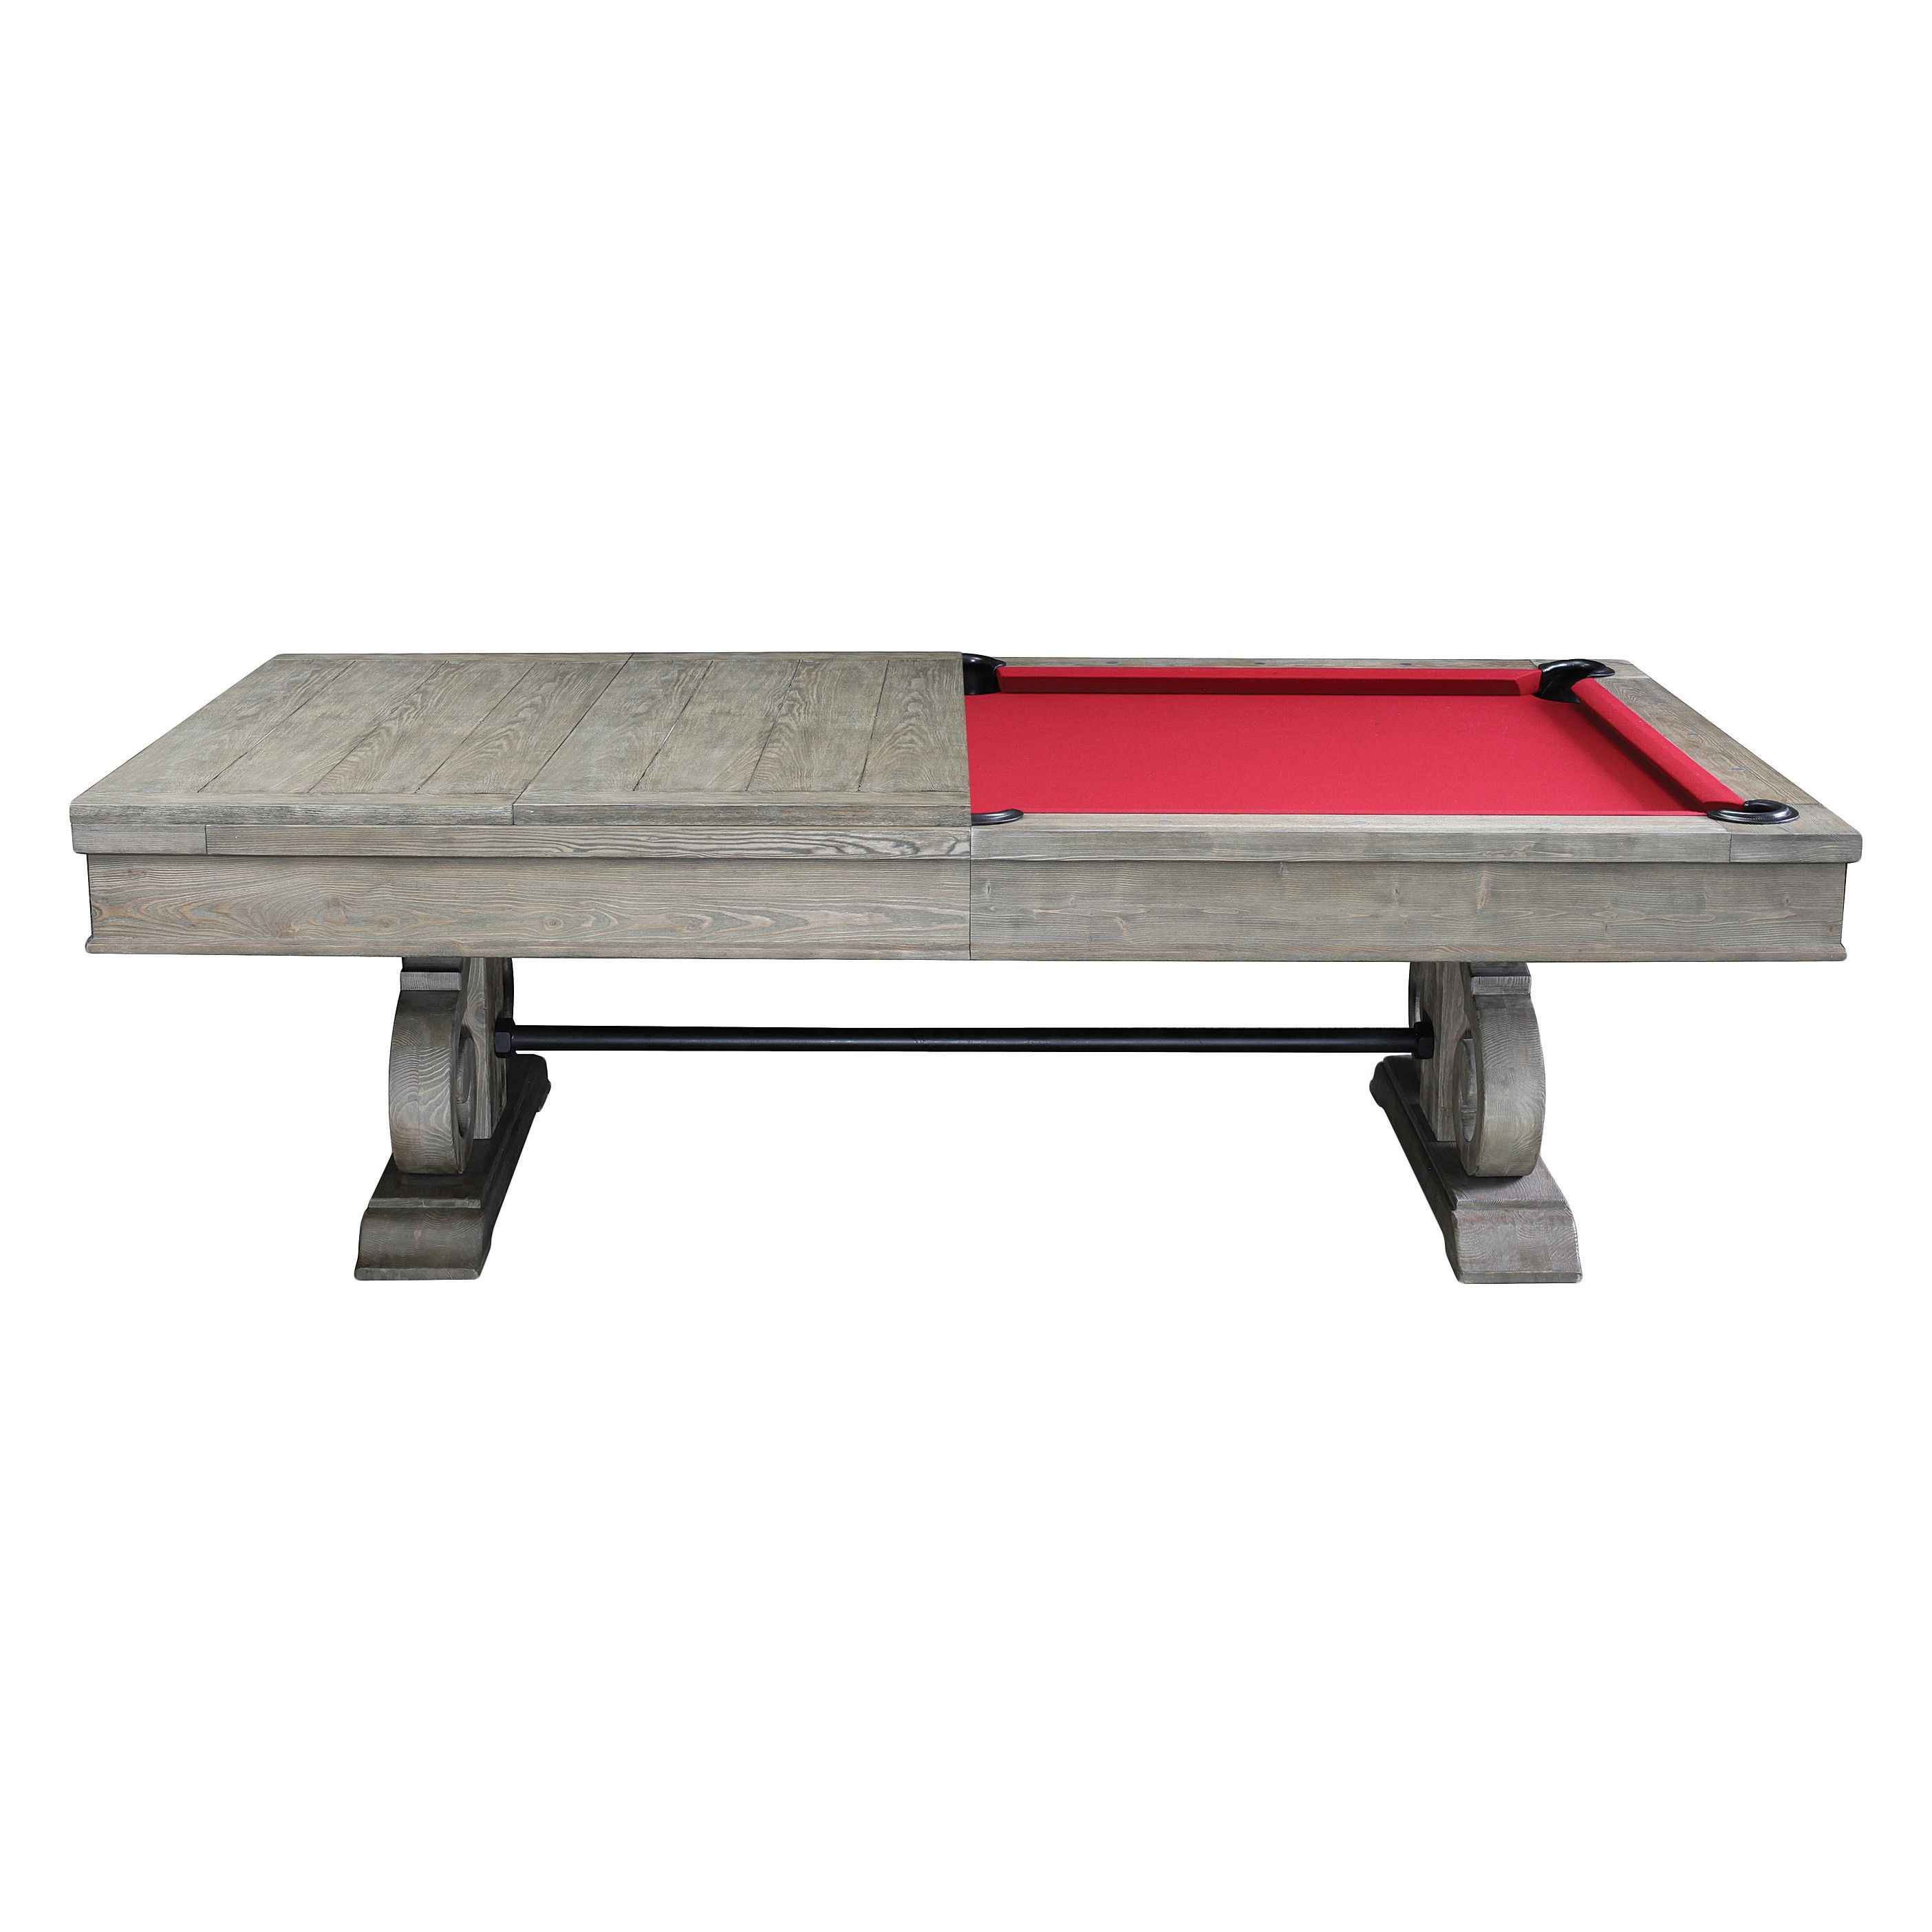 A Blatt Billiards Dining Pool Table Combo Makes It Perfect To Transition  Your Dining Or Conference Space Seamlessly Into A Fun Gaming Or  Recreational Room.